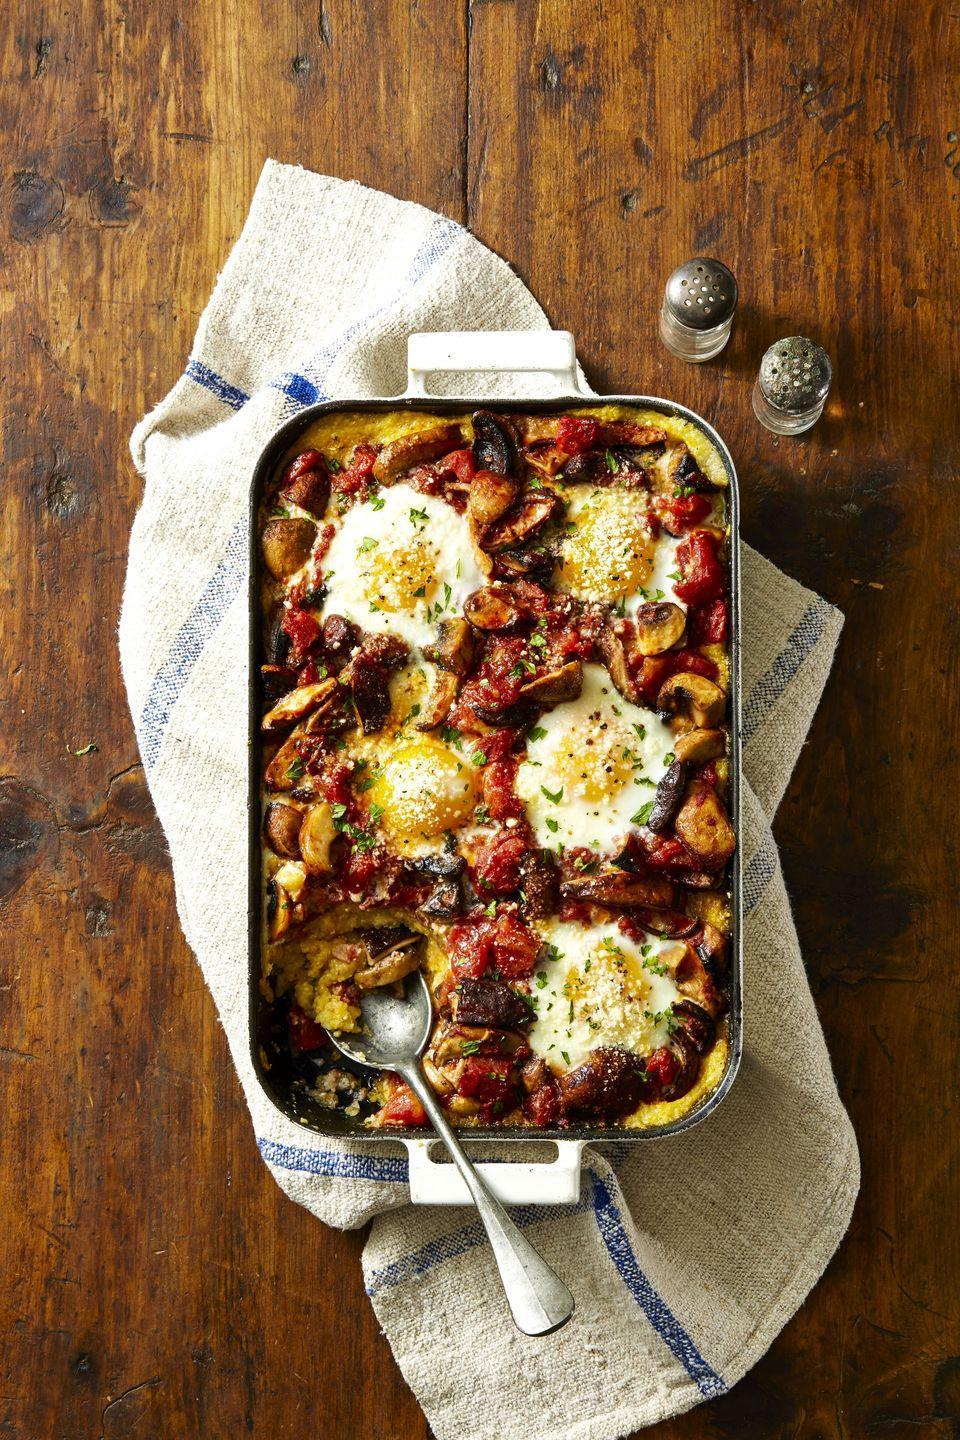 """<p>When cheesy, creamy polenta meets eggs, mushrooms, and tomatoes, magical things happen.</p><p><a href=""""https://www.goodhousekeeping.com/food-recipes/a42214/mushroom-ragu-and-polenta-egg-bake-recipe/"""" rel=""""nofollow noopener"""" target=""""_blank"""" data-ylk=""""slk:Get the recipe for Mushroom Ragu and Polenta Egg Bake »"""" class=""""link rapid-noclick-resp""""><em>Get the recipe for Mushroom Ragu and Polenta Egg Bake »</em></a></p>"""